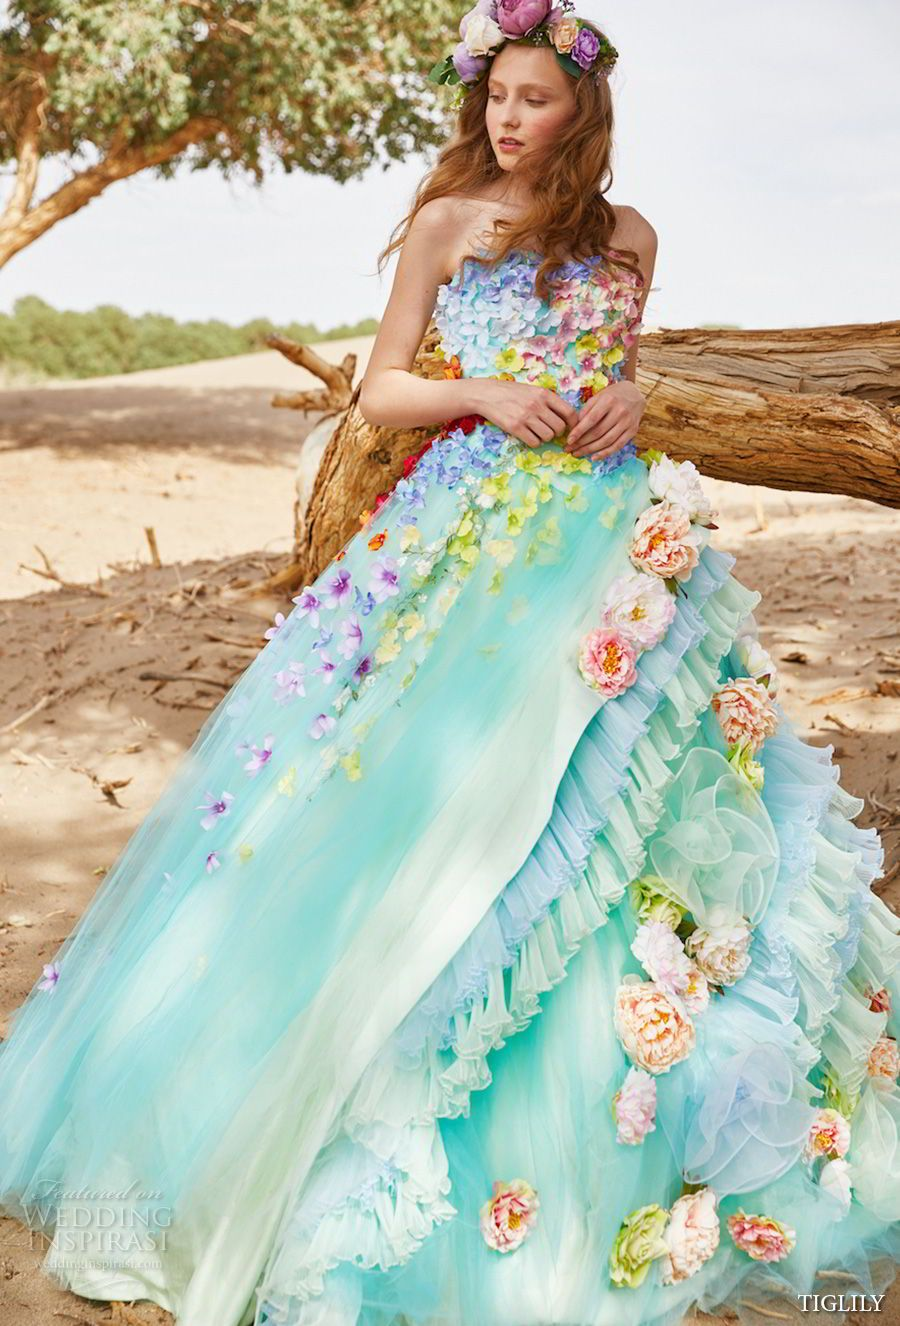 Strapless ball gown wedding dresses  TIGLILY  Wedding Dresses  Green colors Ball gowns and Neckline